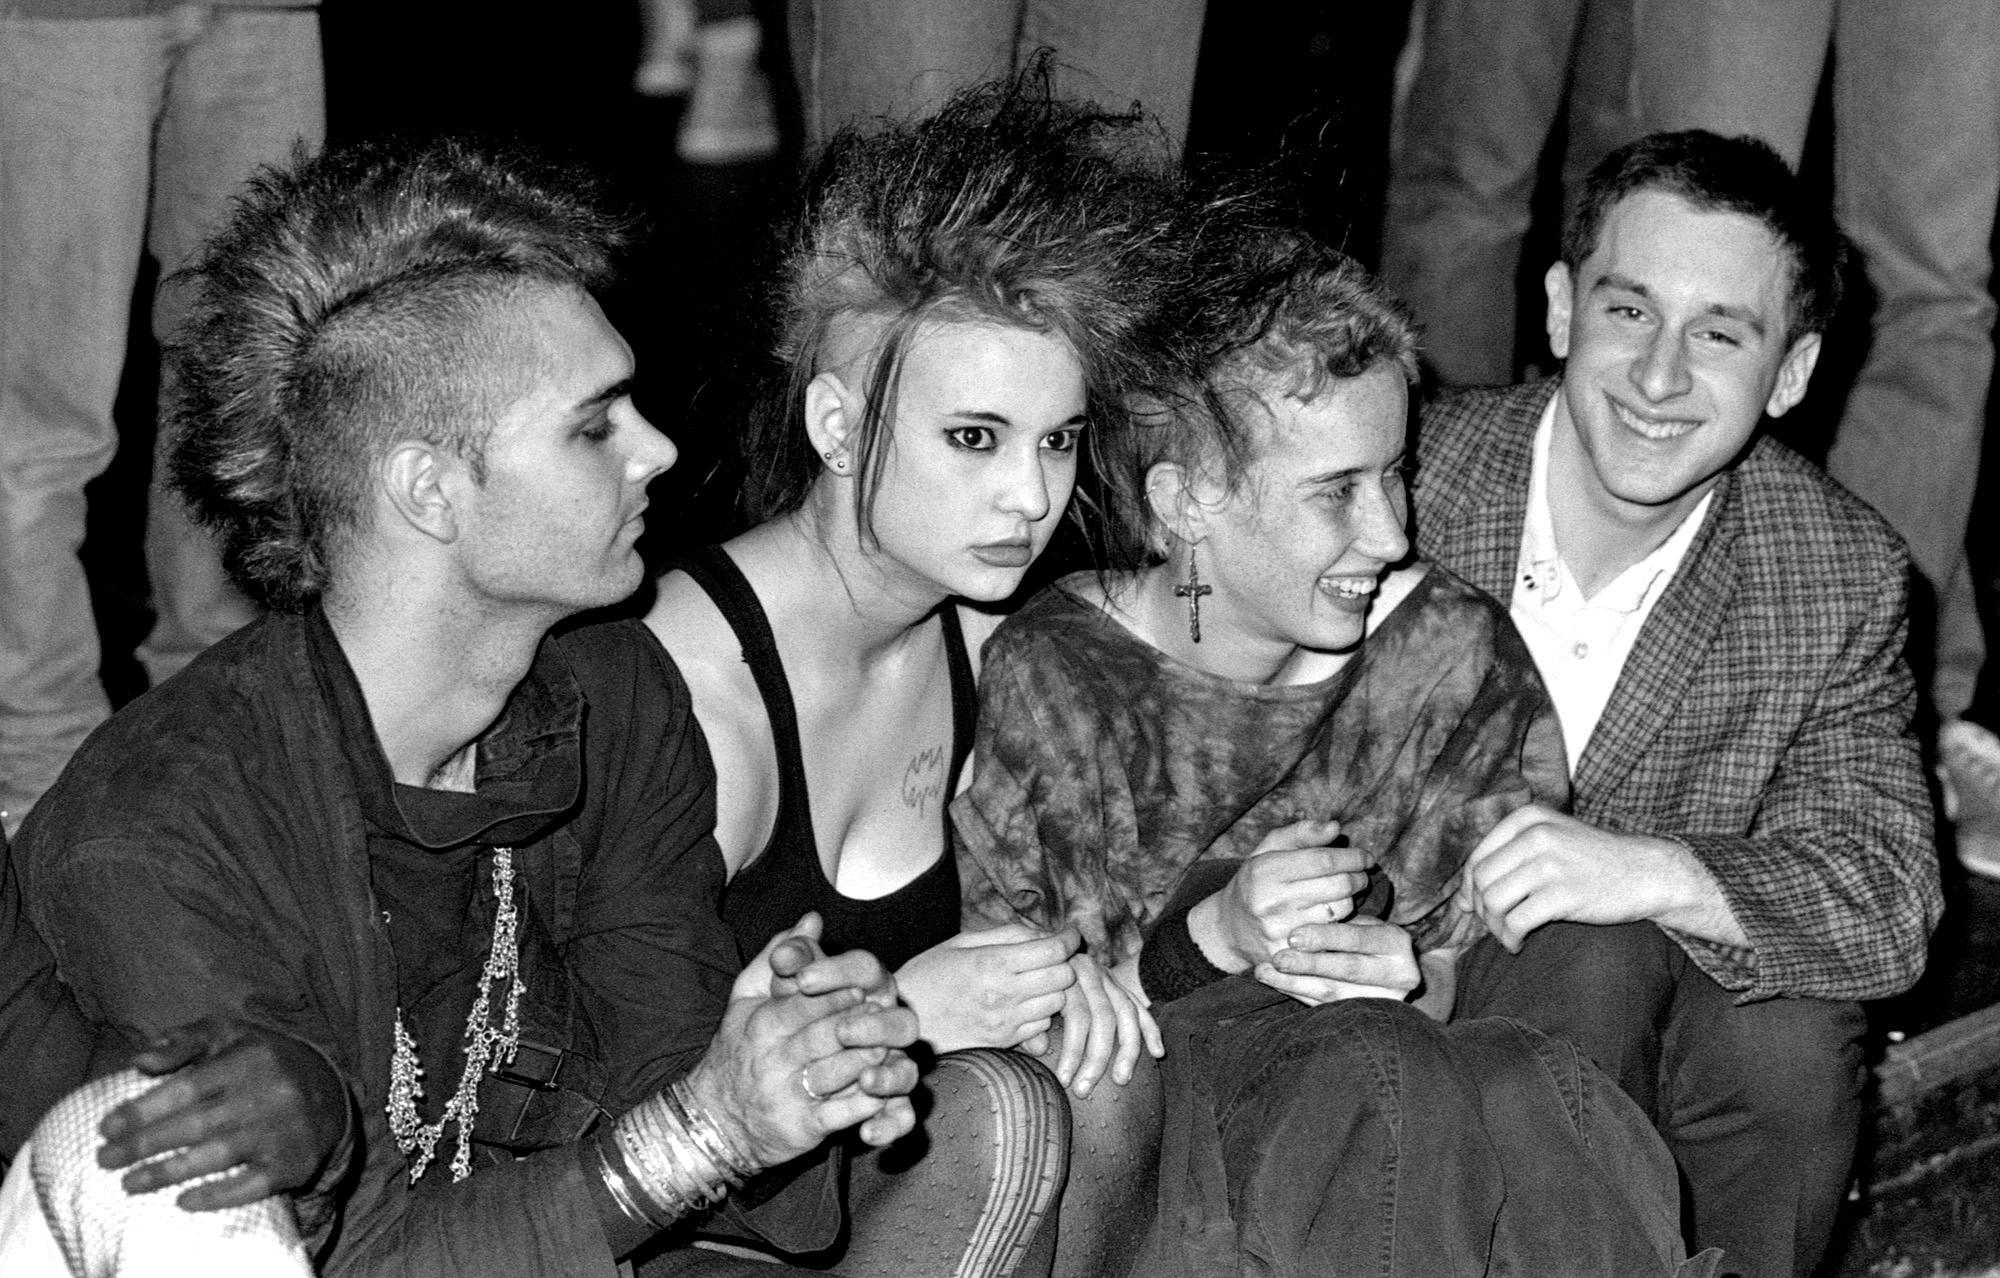 Punks take a break in the Pit, 18+ show, 1985.